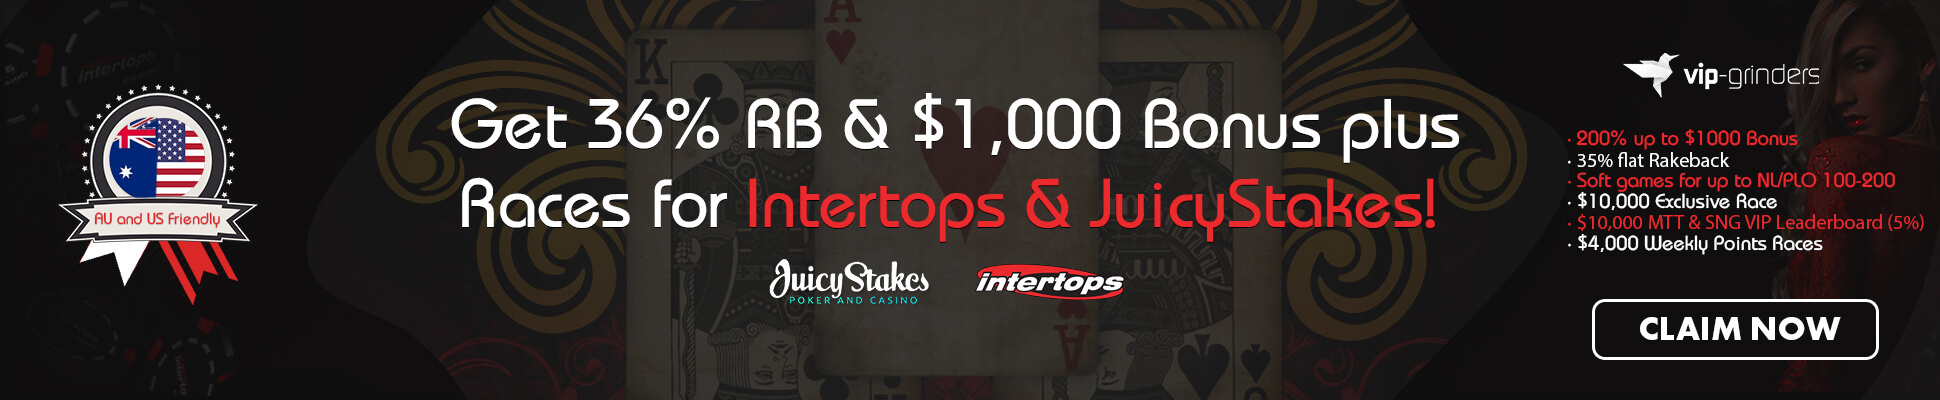 intertips and juicystakes slider january